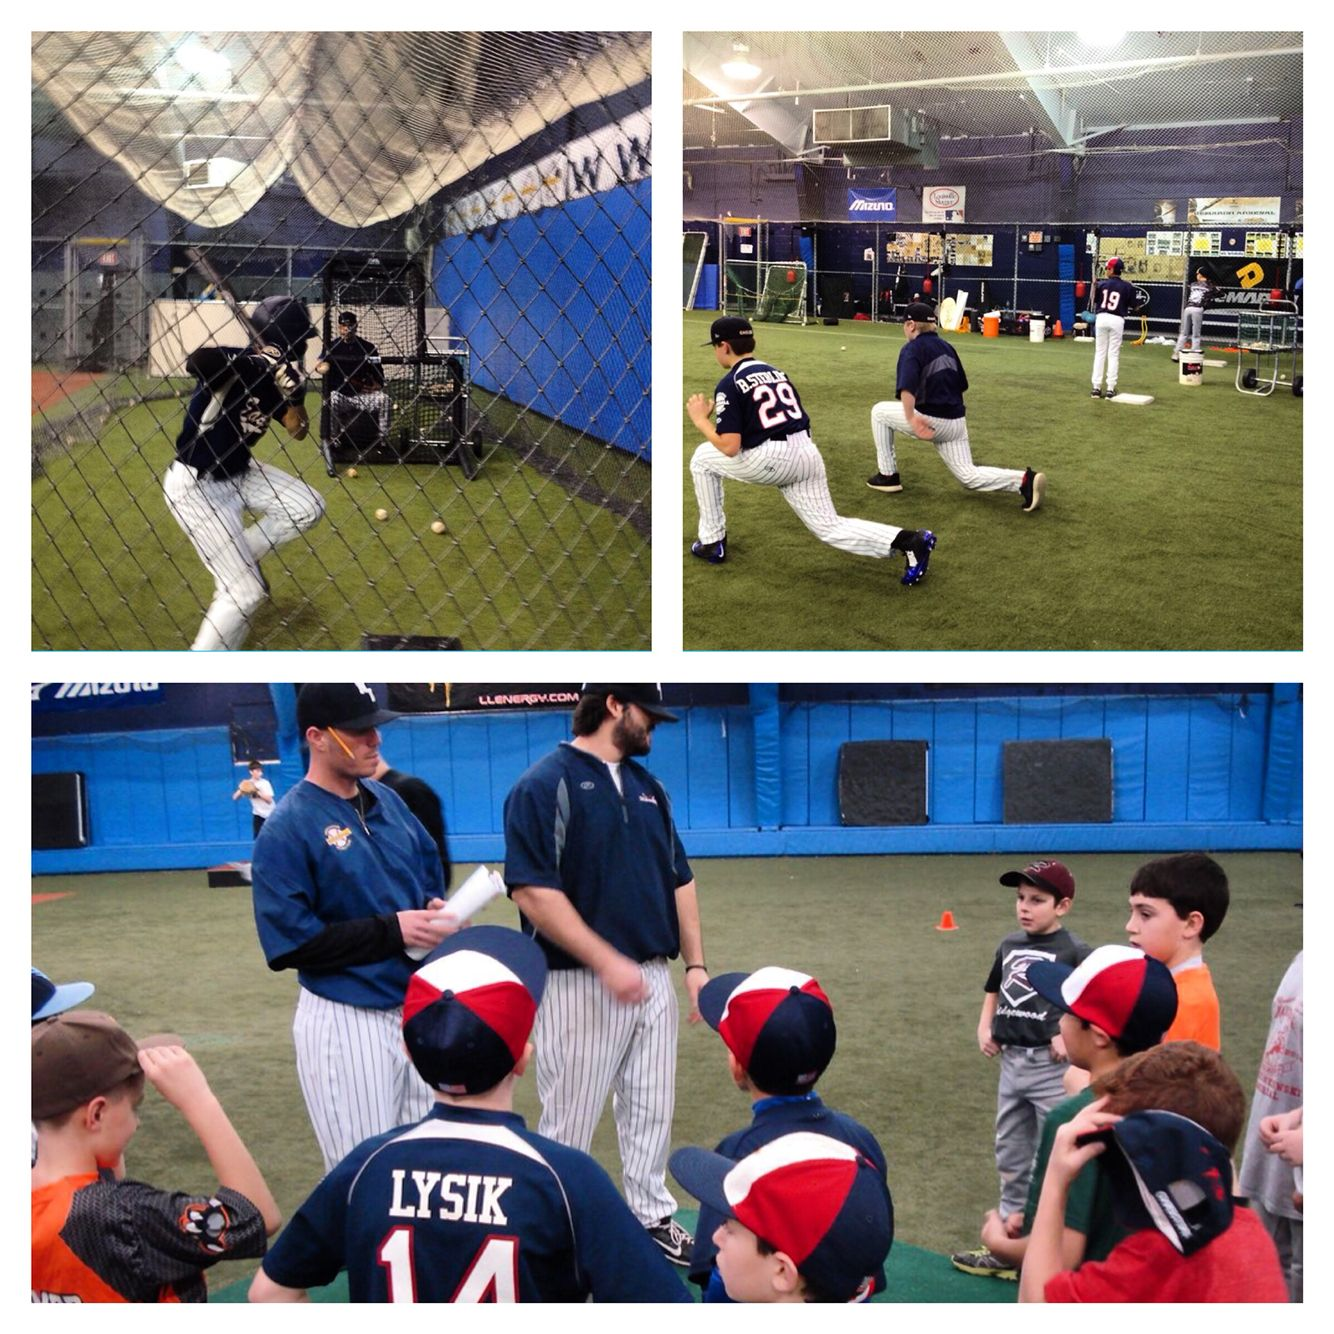 Continue Your Winter Training Regimen Once The Junior And Senior Winter Training Programs Conclude In Pbi S M Winter Training Training Programs Spring Training